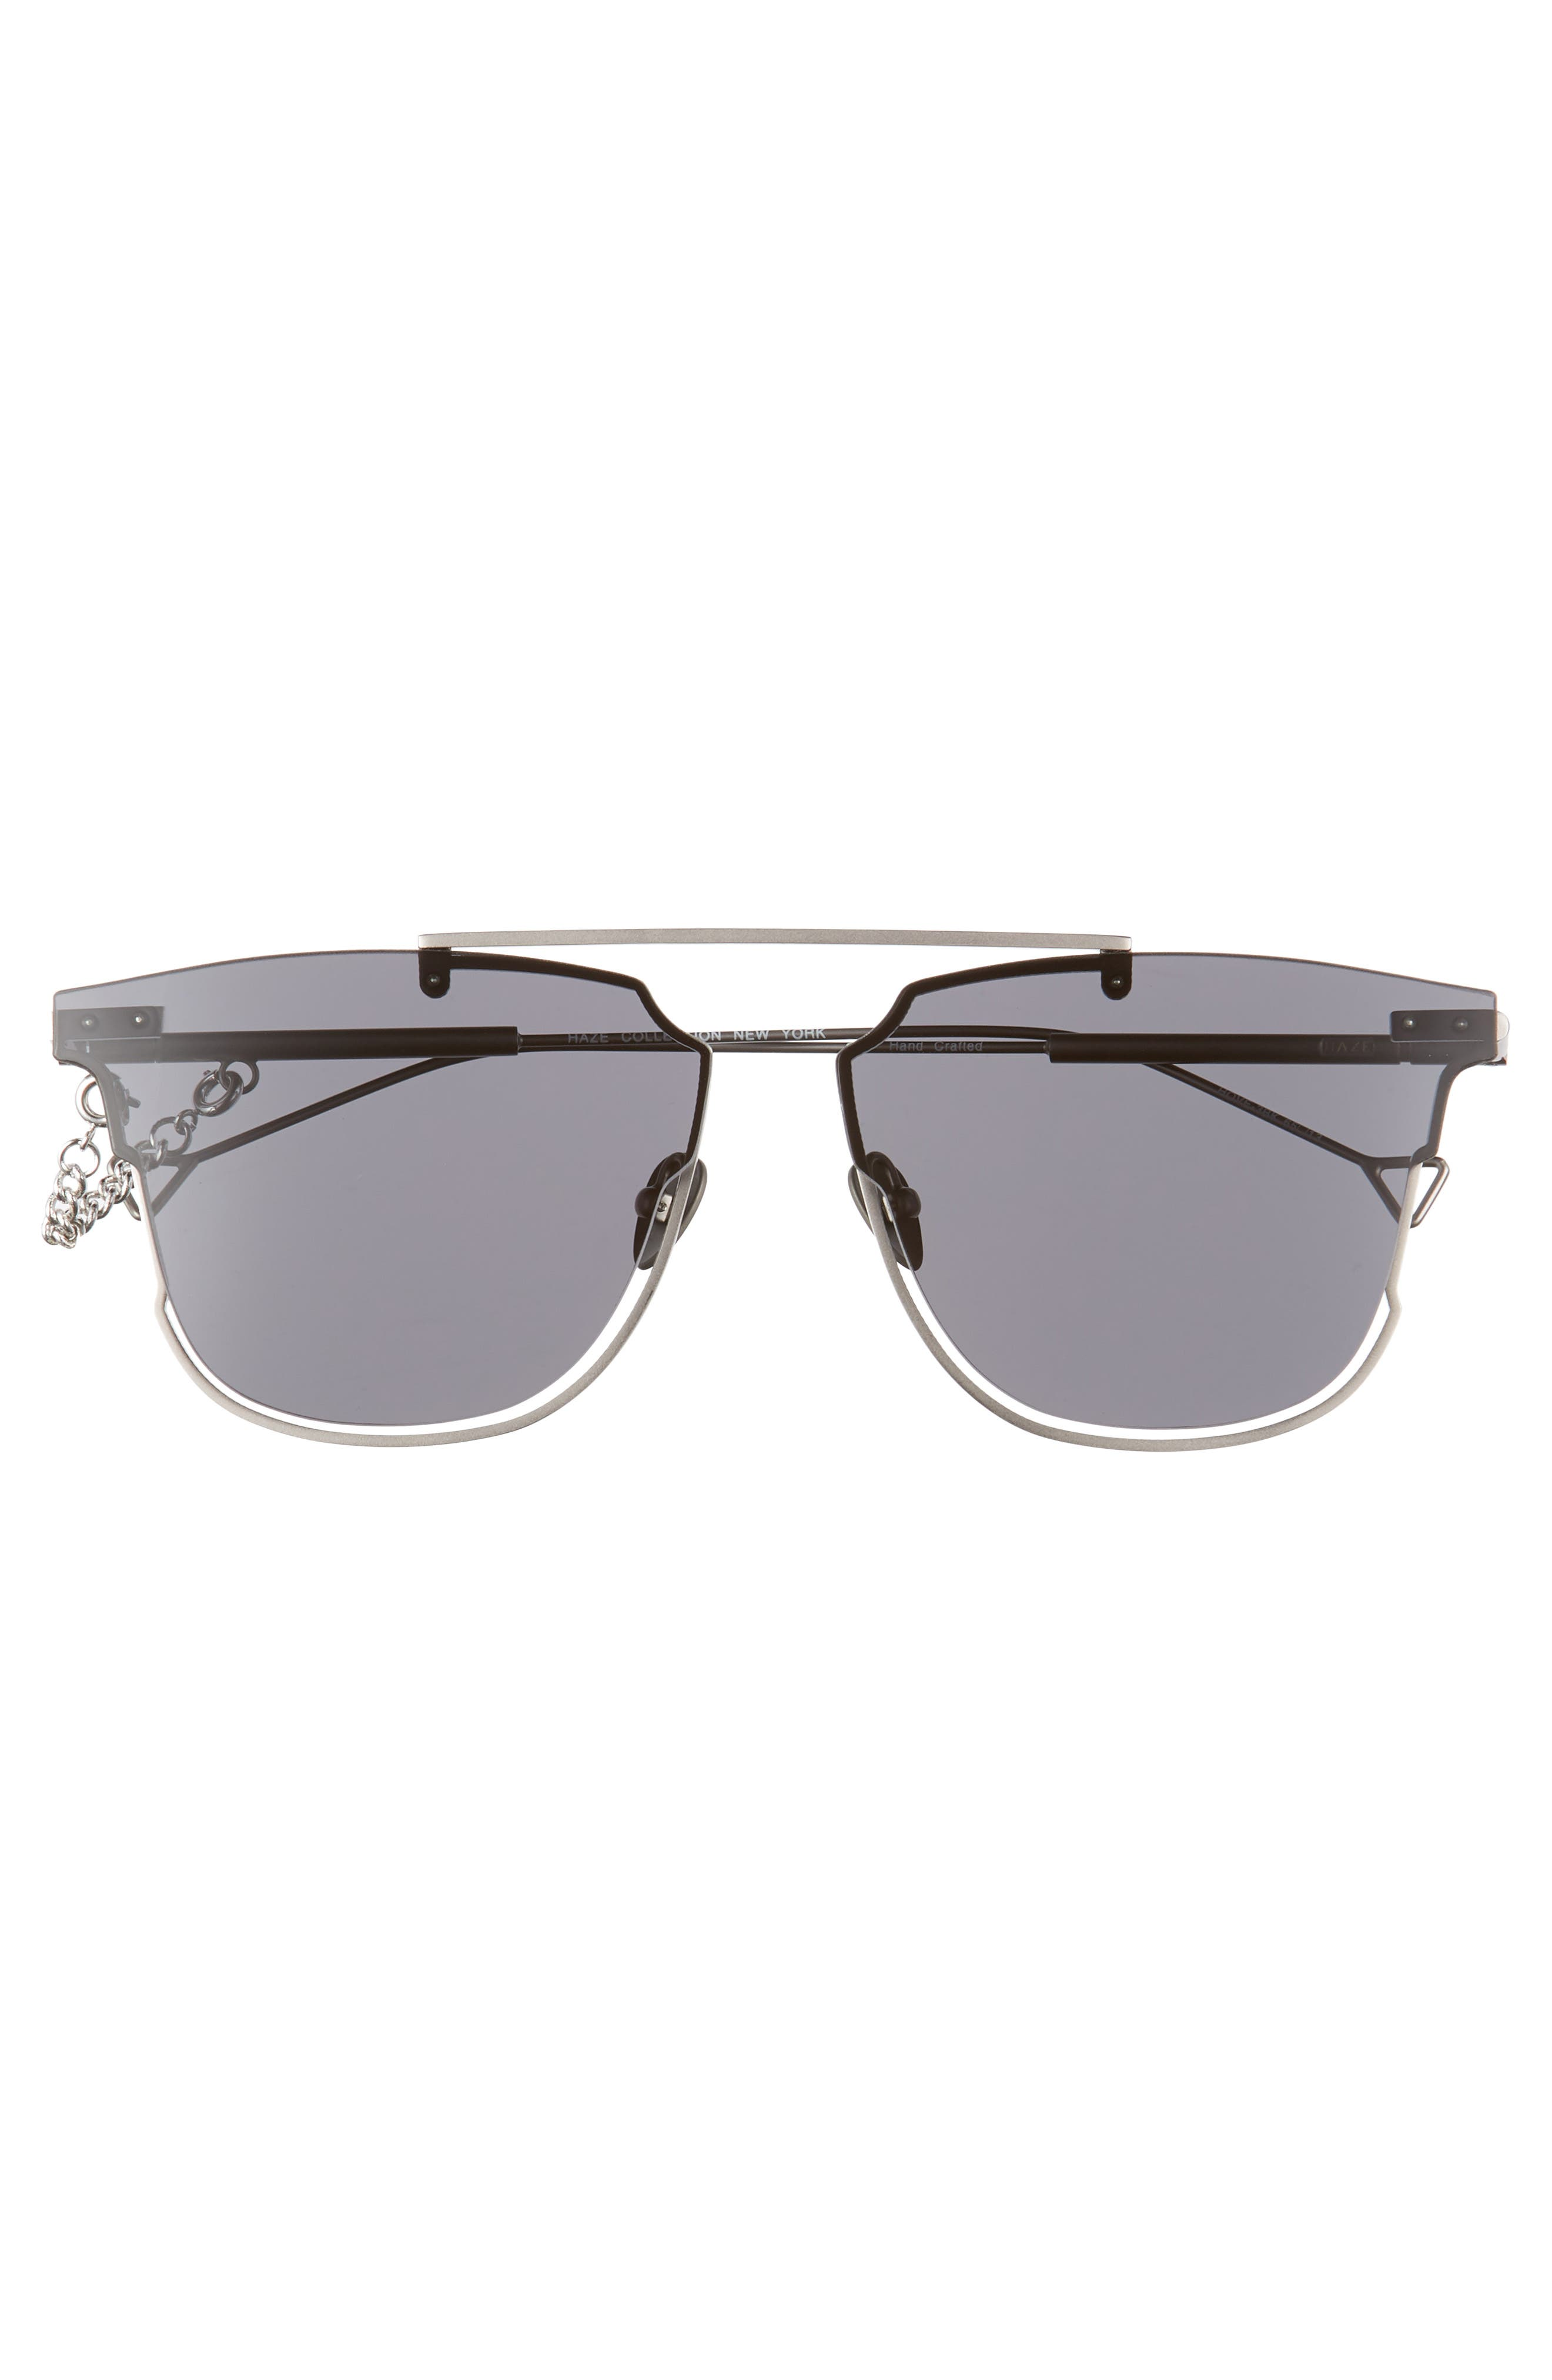 Hove 65mm Sunglasses,                             Alternate thumbnail 3, color,                             Smoke